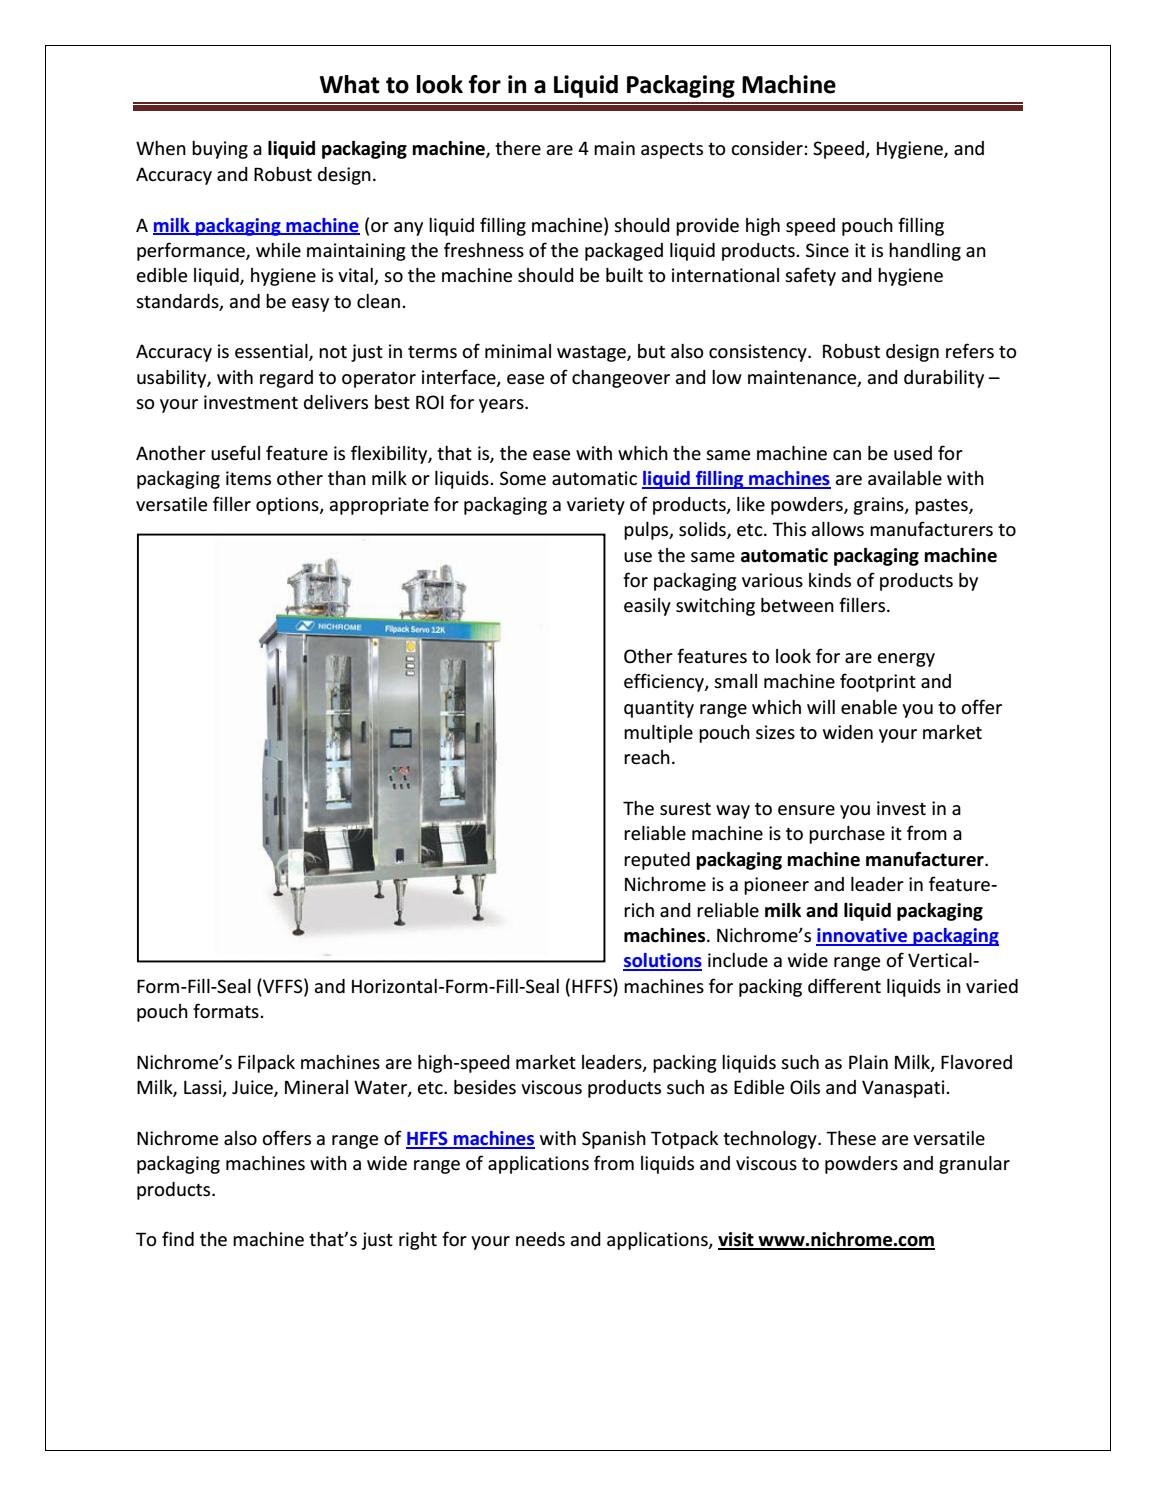 What to look for in a liquid packaging machine by Nichrome